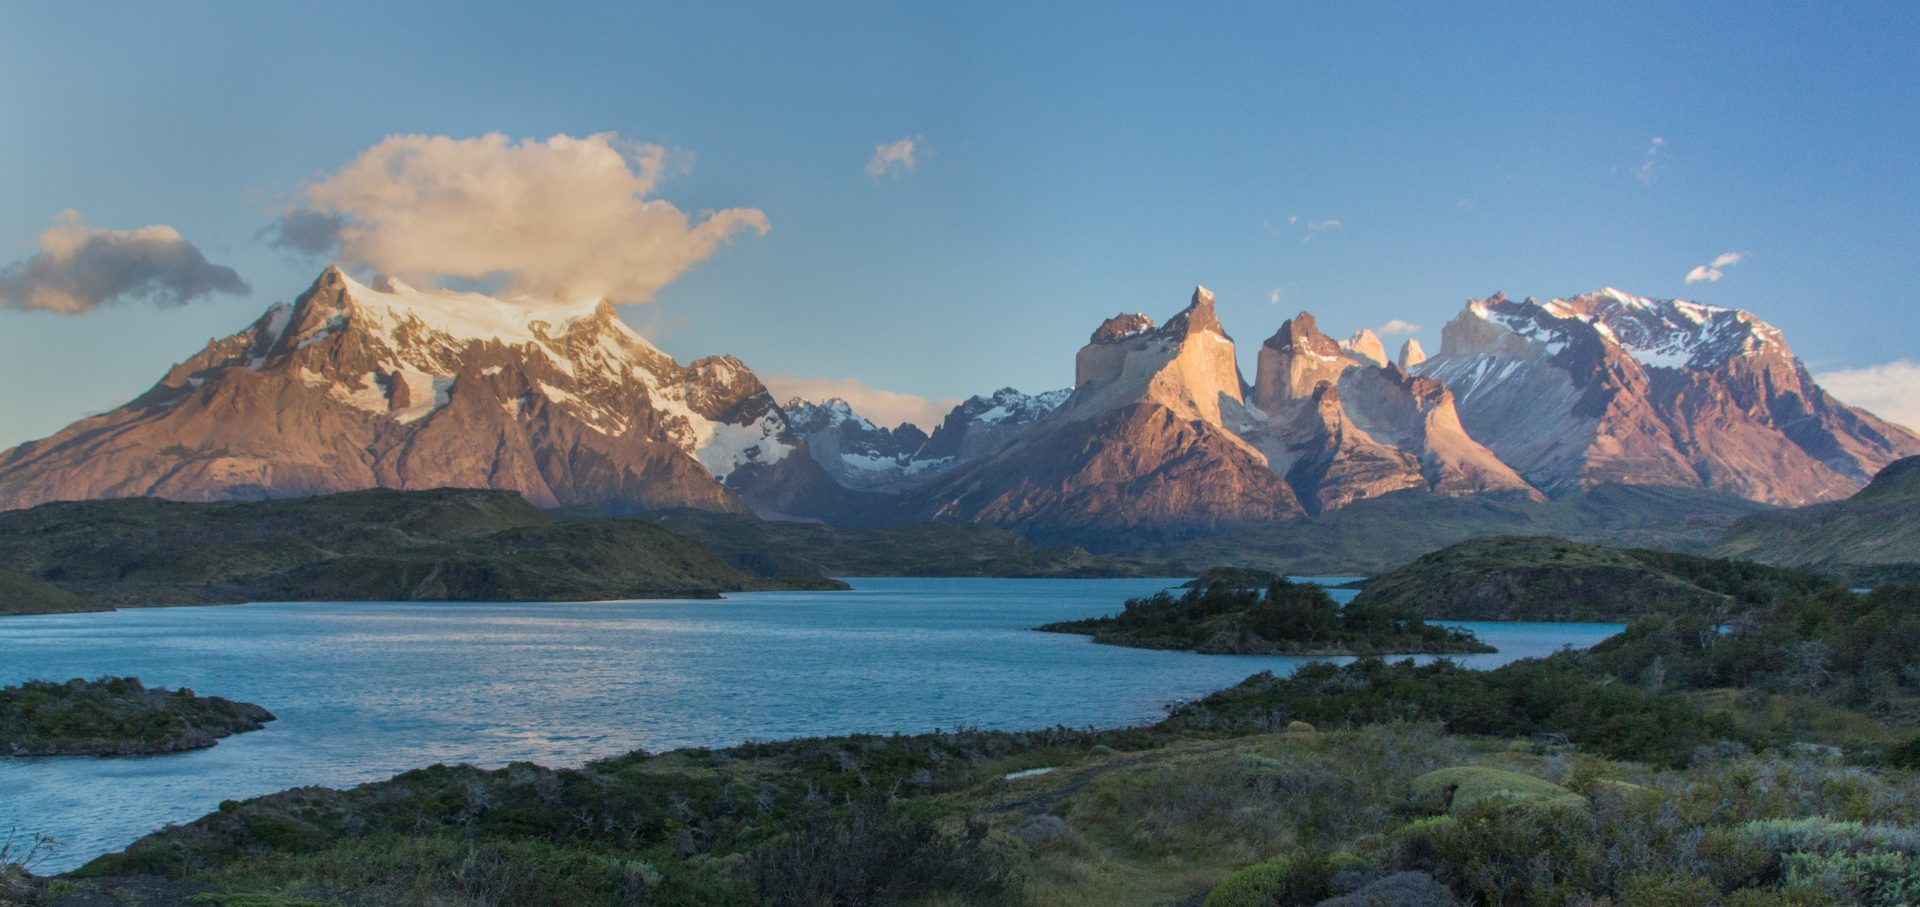 Torres del Paine, Chile (photo credit John May)